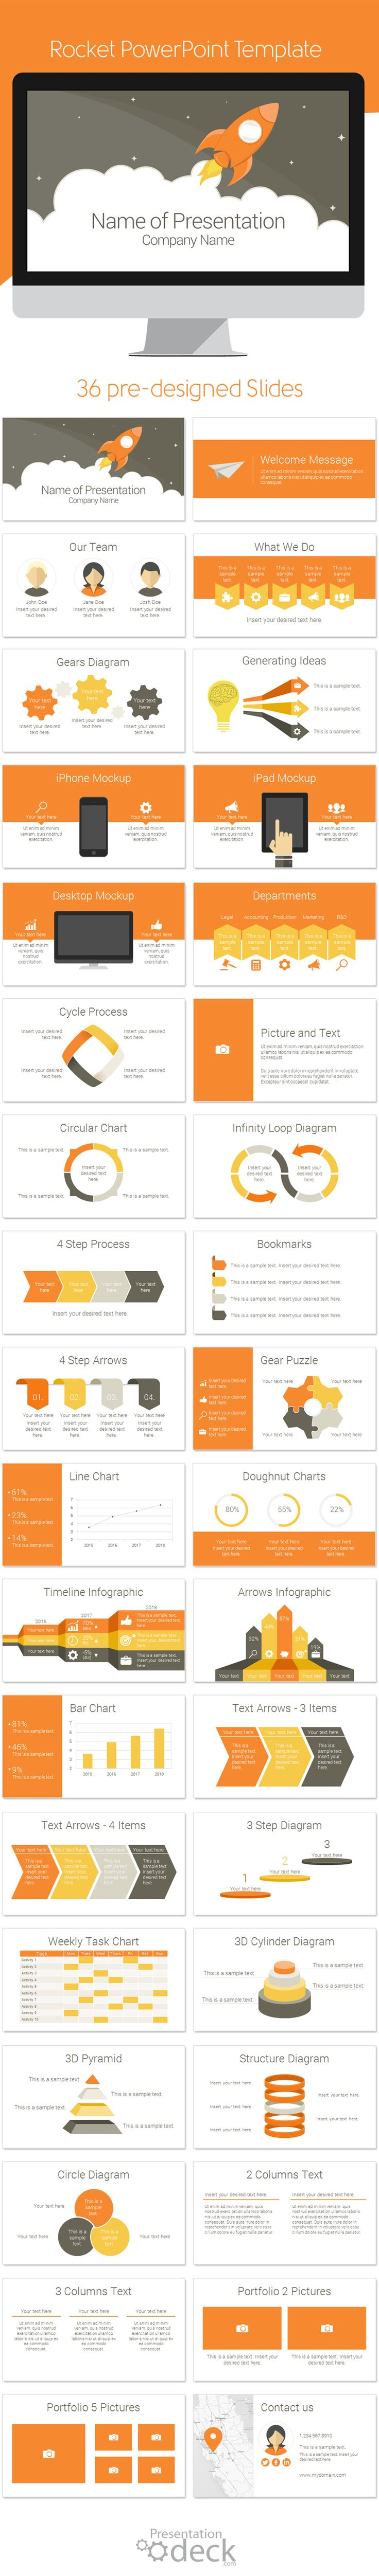 237 best presentation design images on pinterest graphics design rocket powerpoint template in flat design style with 36 slides this template is multipurpose and toneelgroepblik